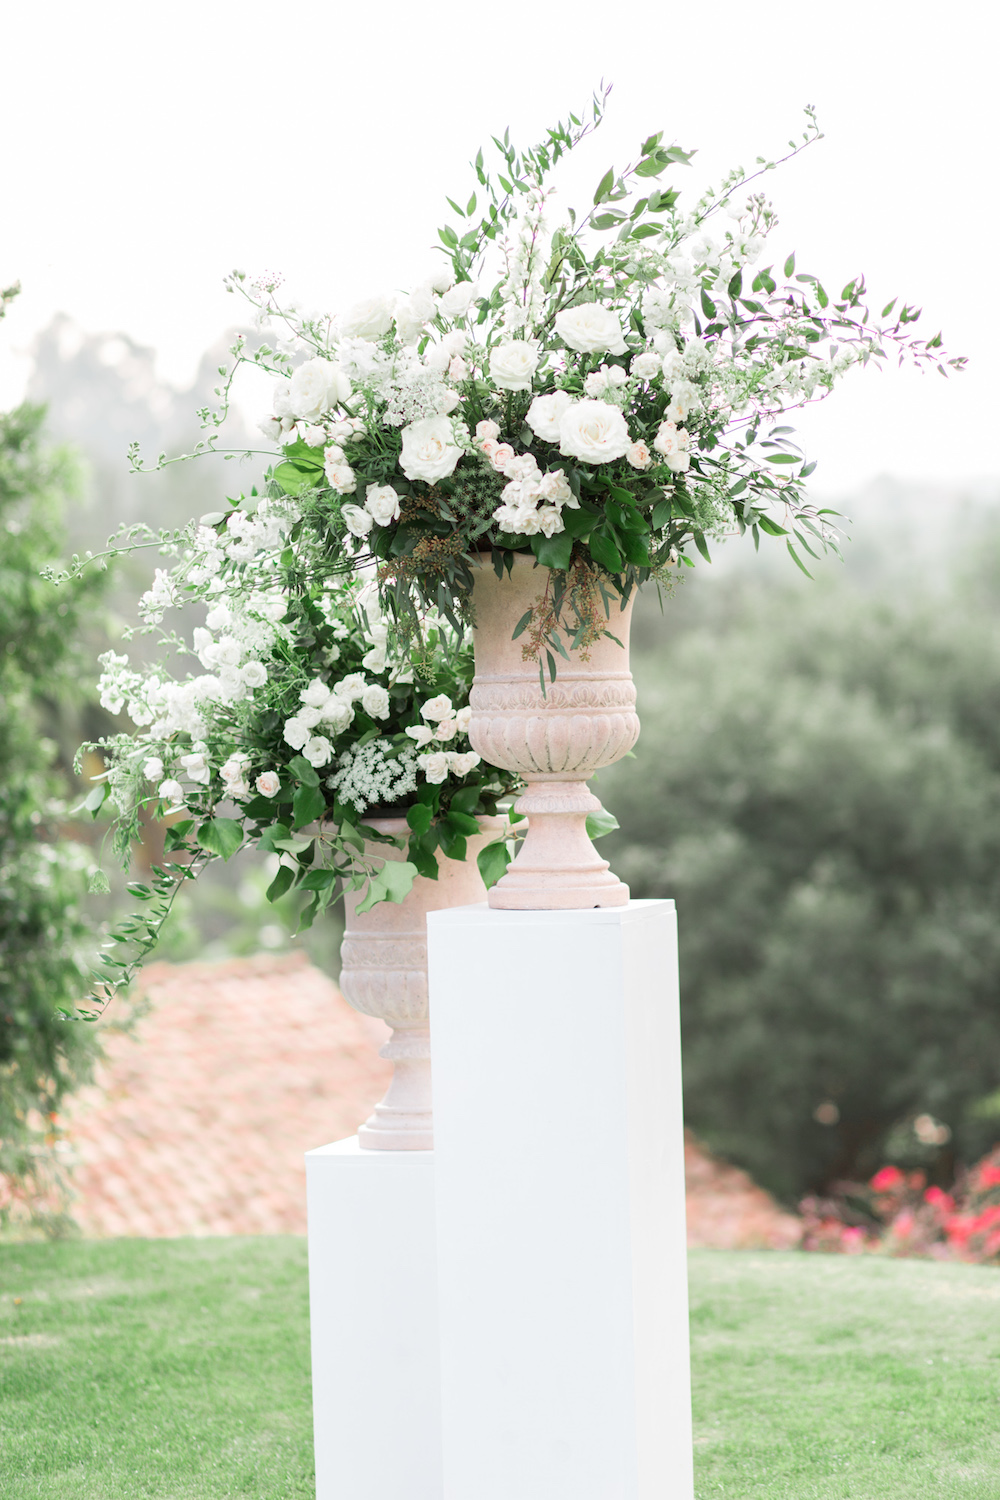 Garden romantic white ceremony pedestal florals | Rancho Valencia Weddings | Rancho Santa Fe | Compass Floral | Wedding Florist in San Diego and Southern California | Cavin Elizabeth Photography